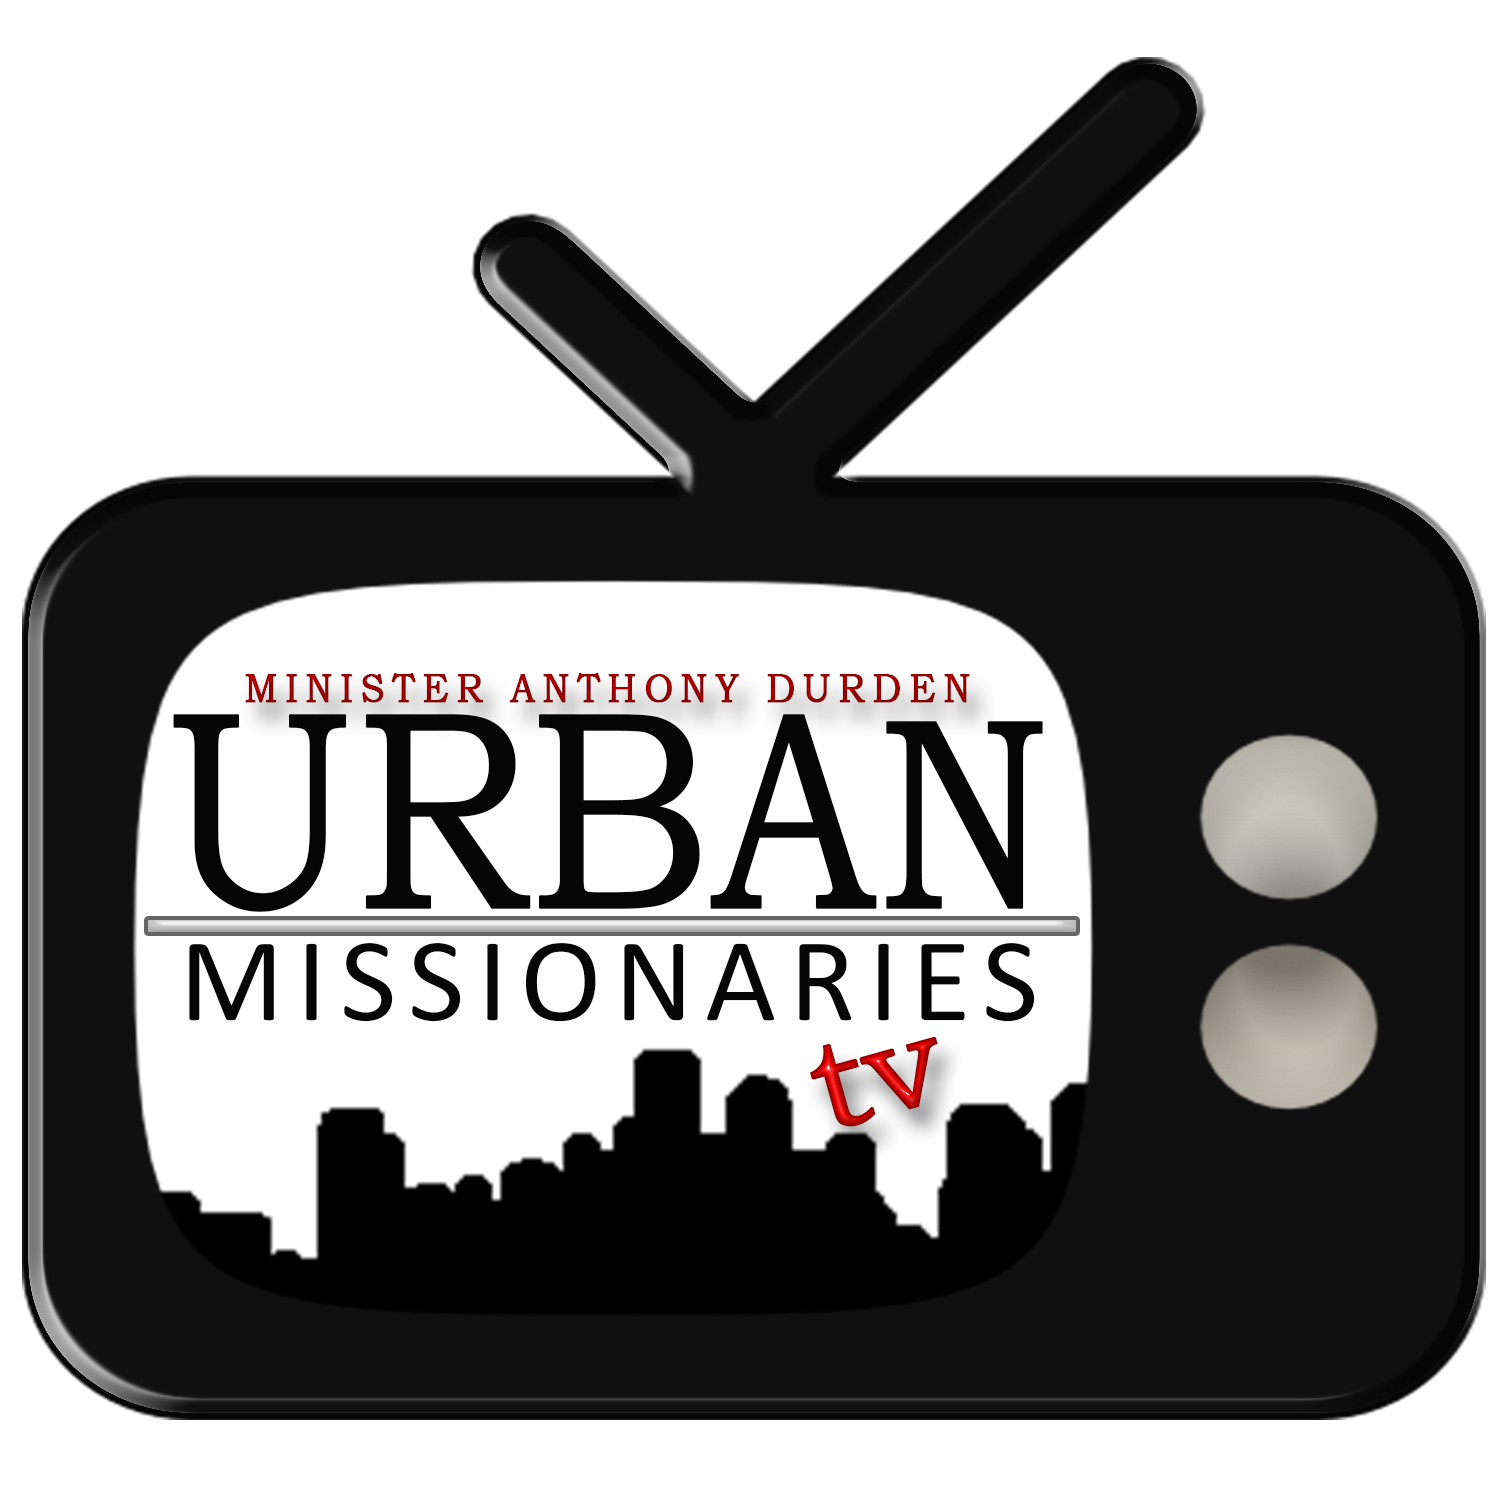 URBAN MISSIONARIES TV LOGO4_edited